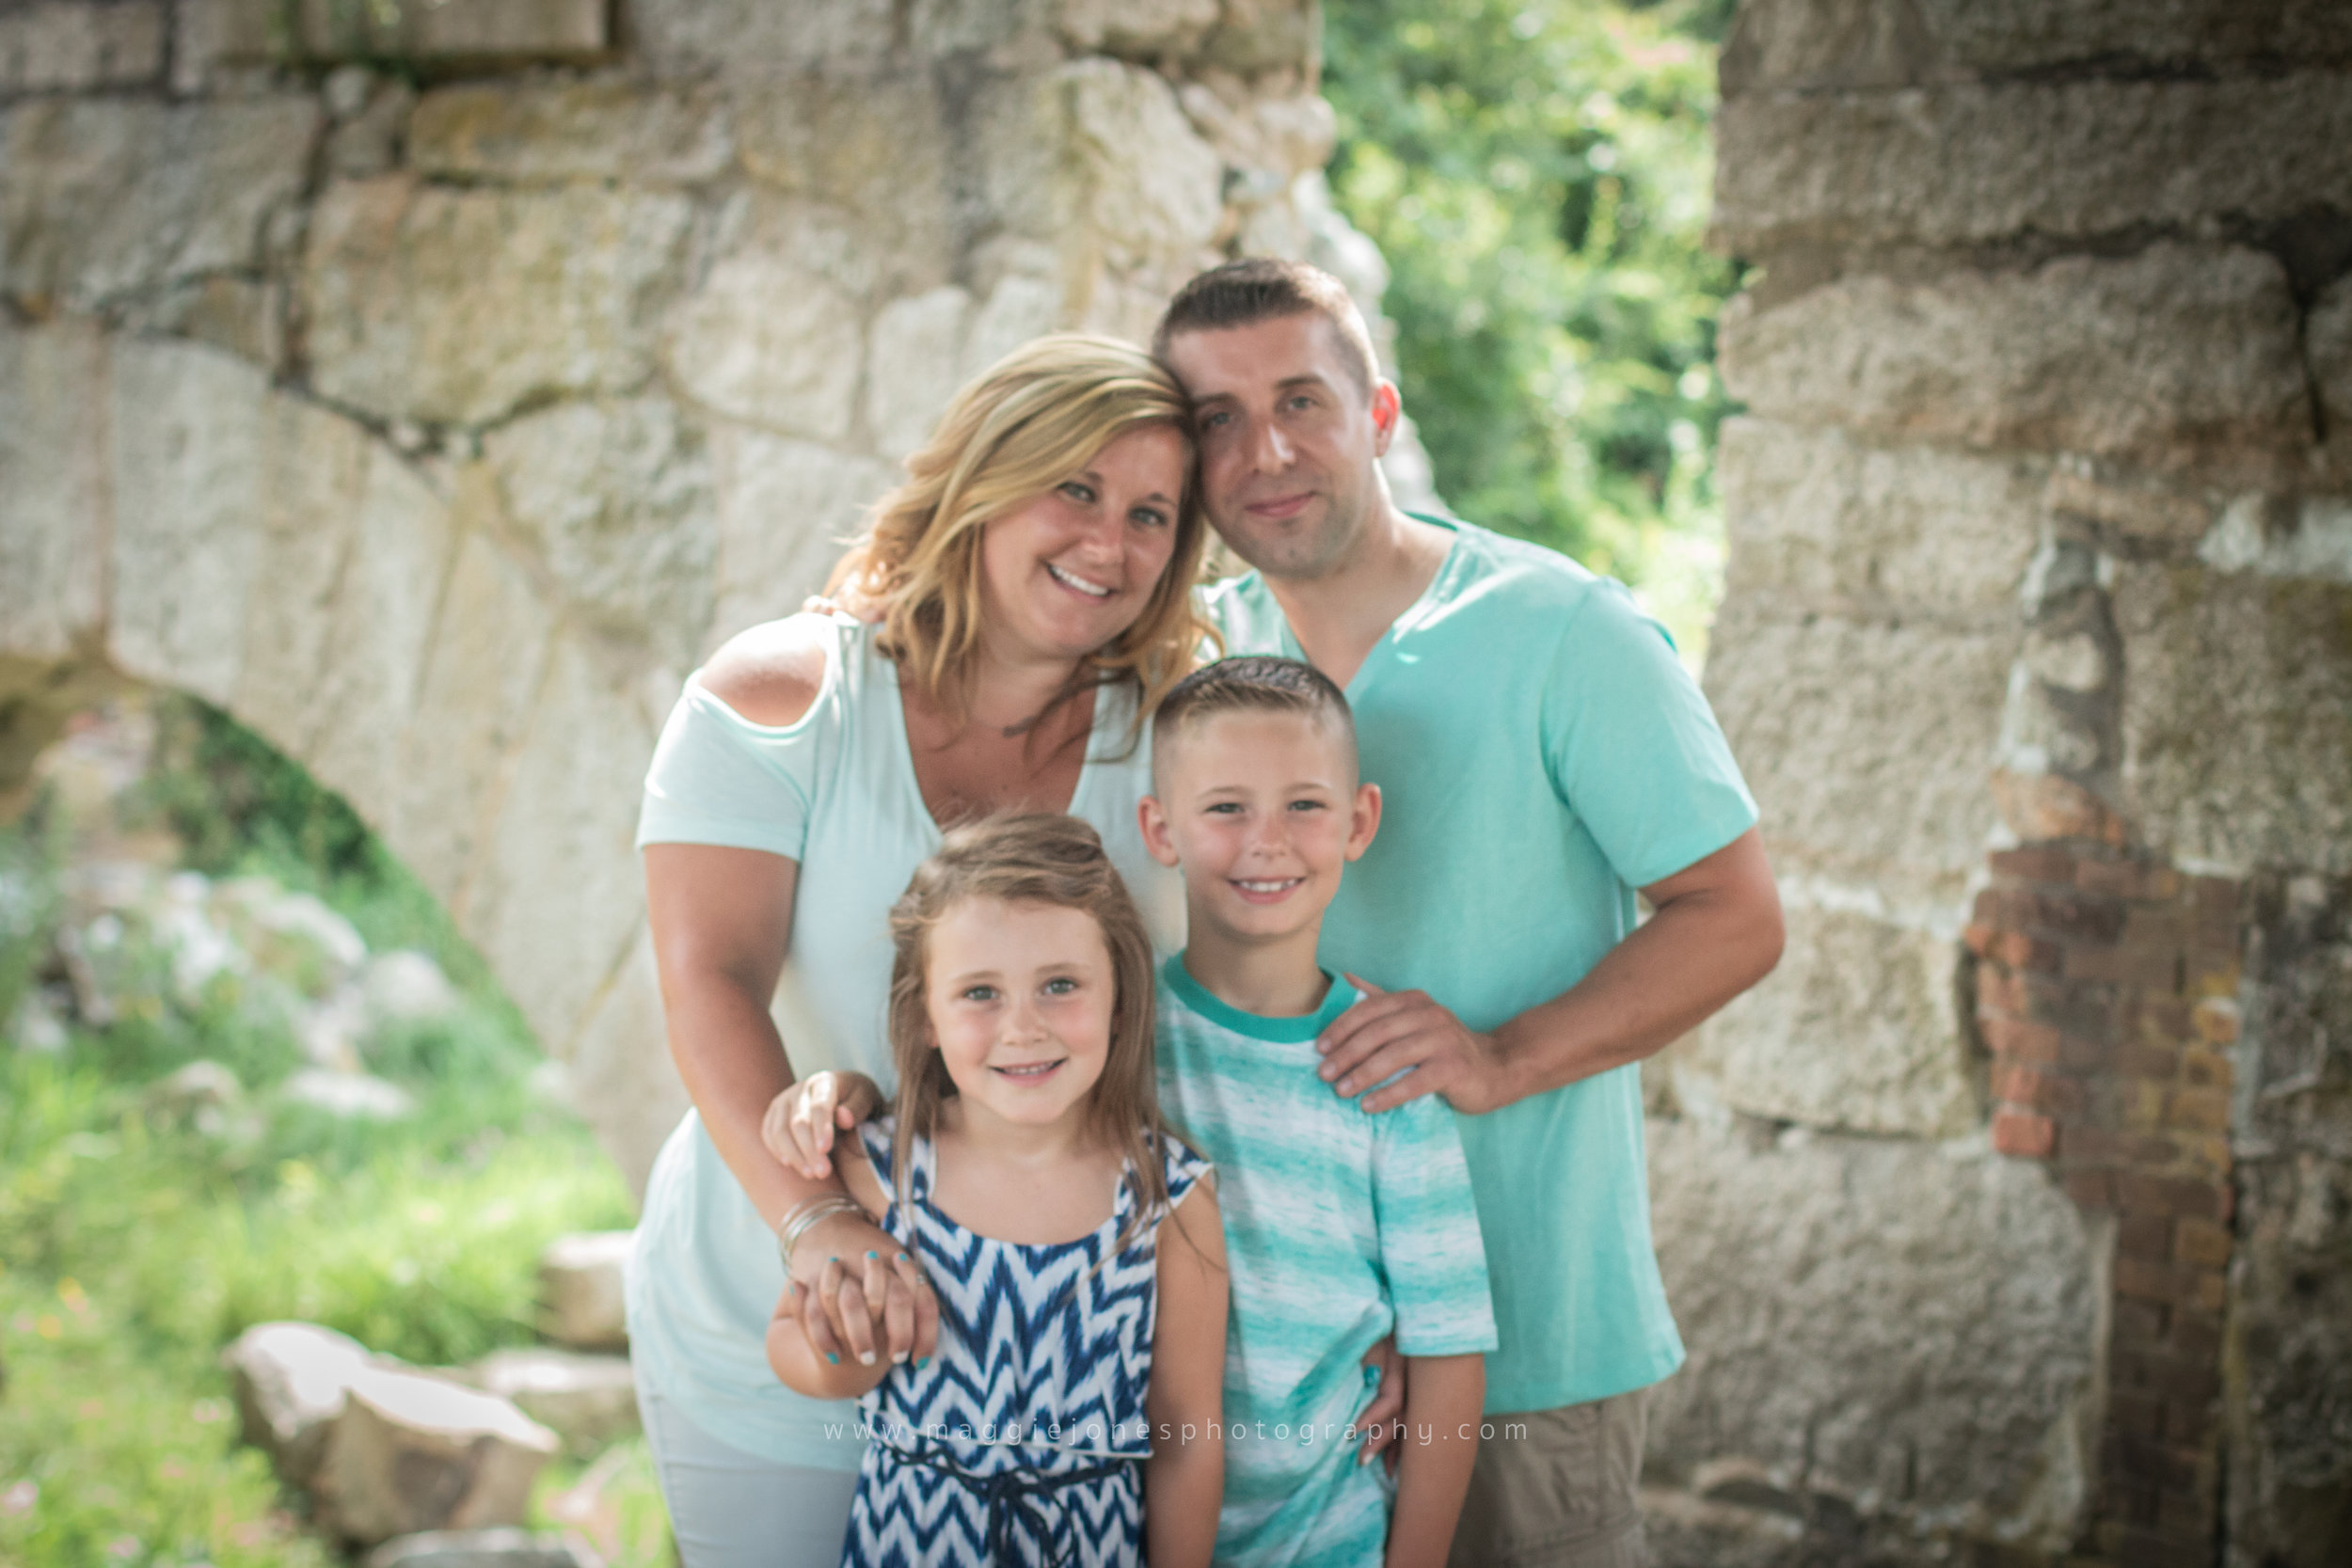 AmandaBrown_July2018FamilySession-1-13.jpg